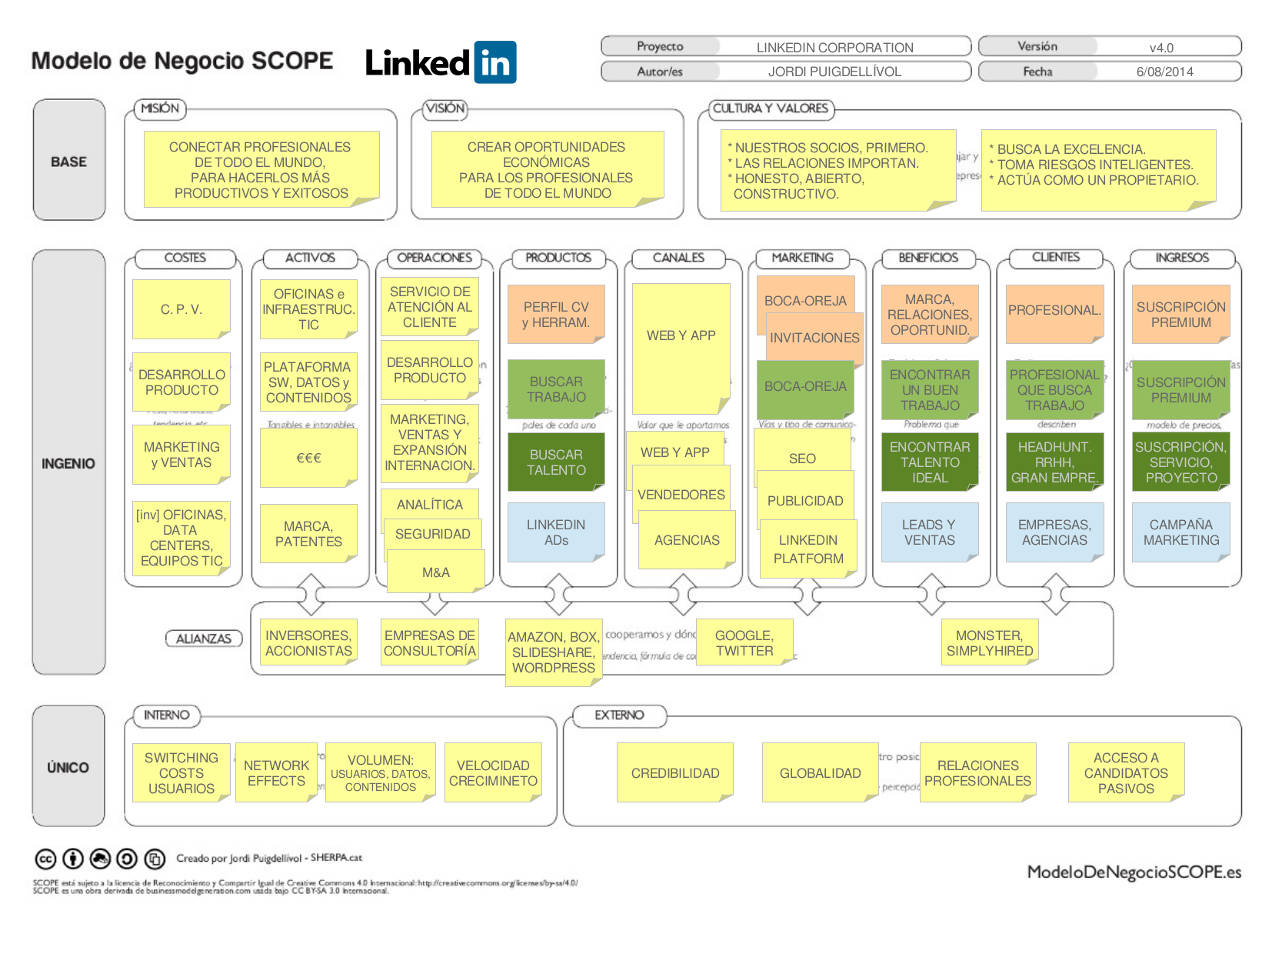 Linkedin – Modelo de Negocio SCOPE